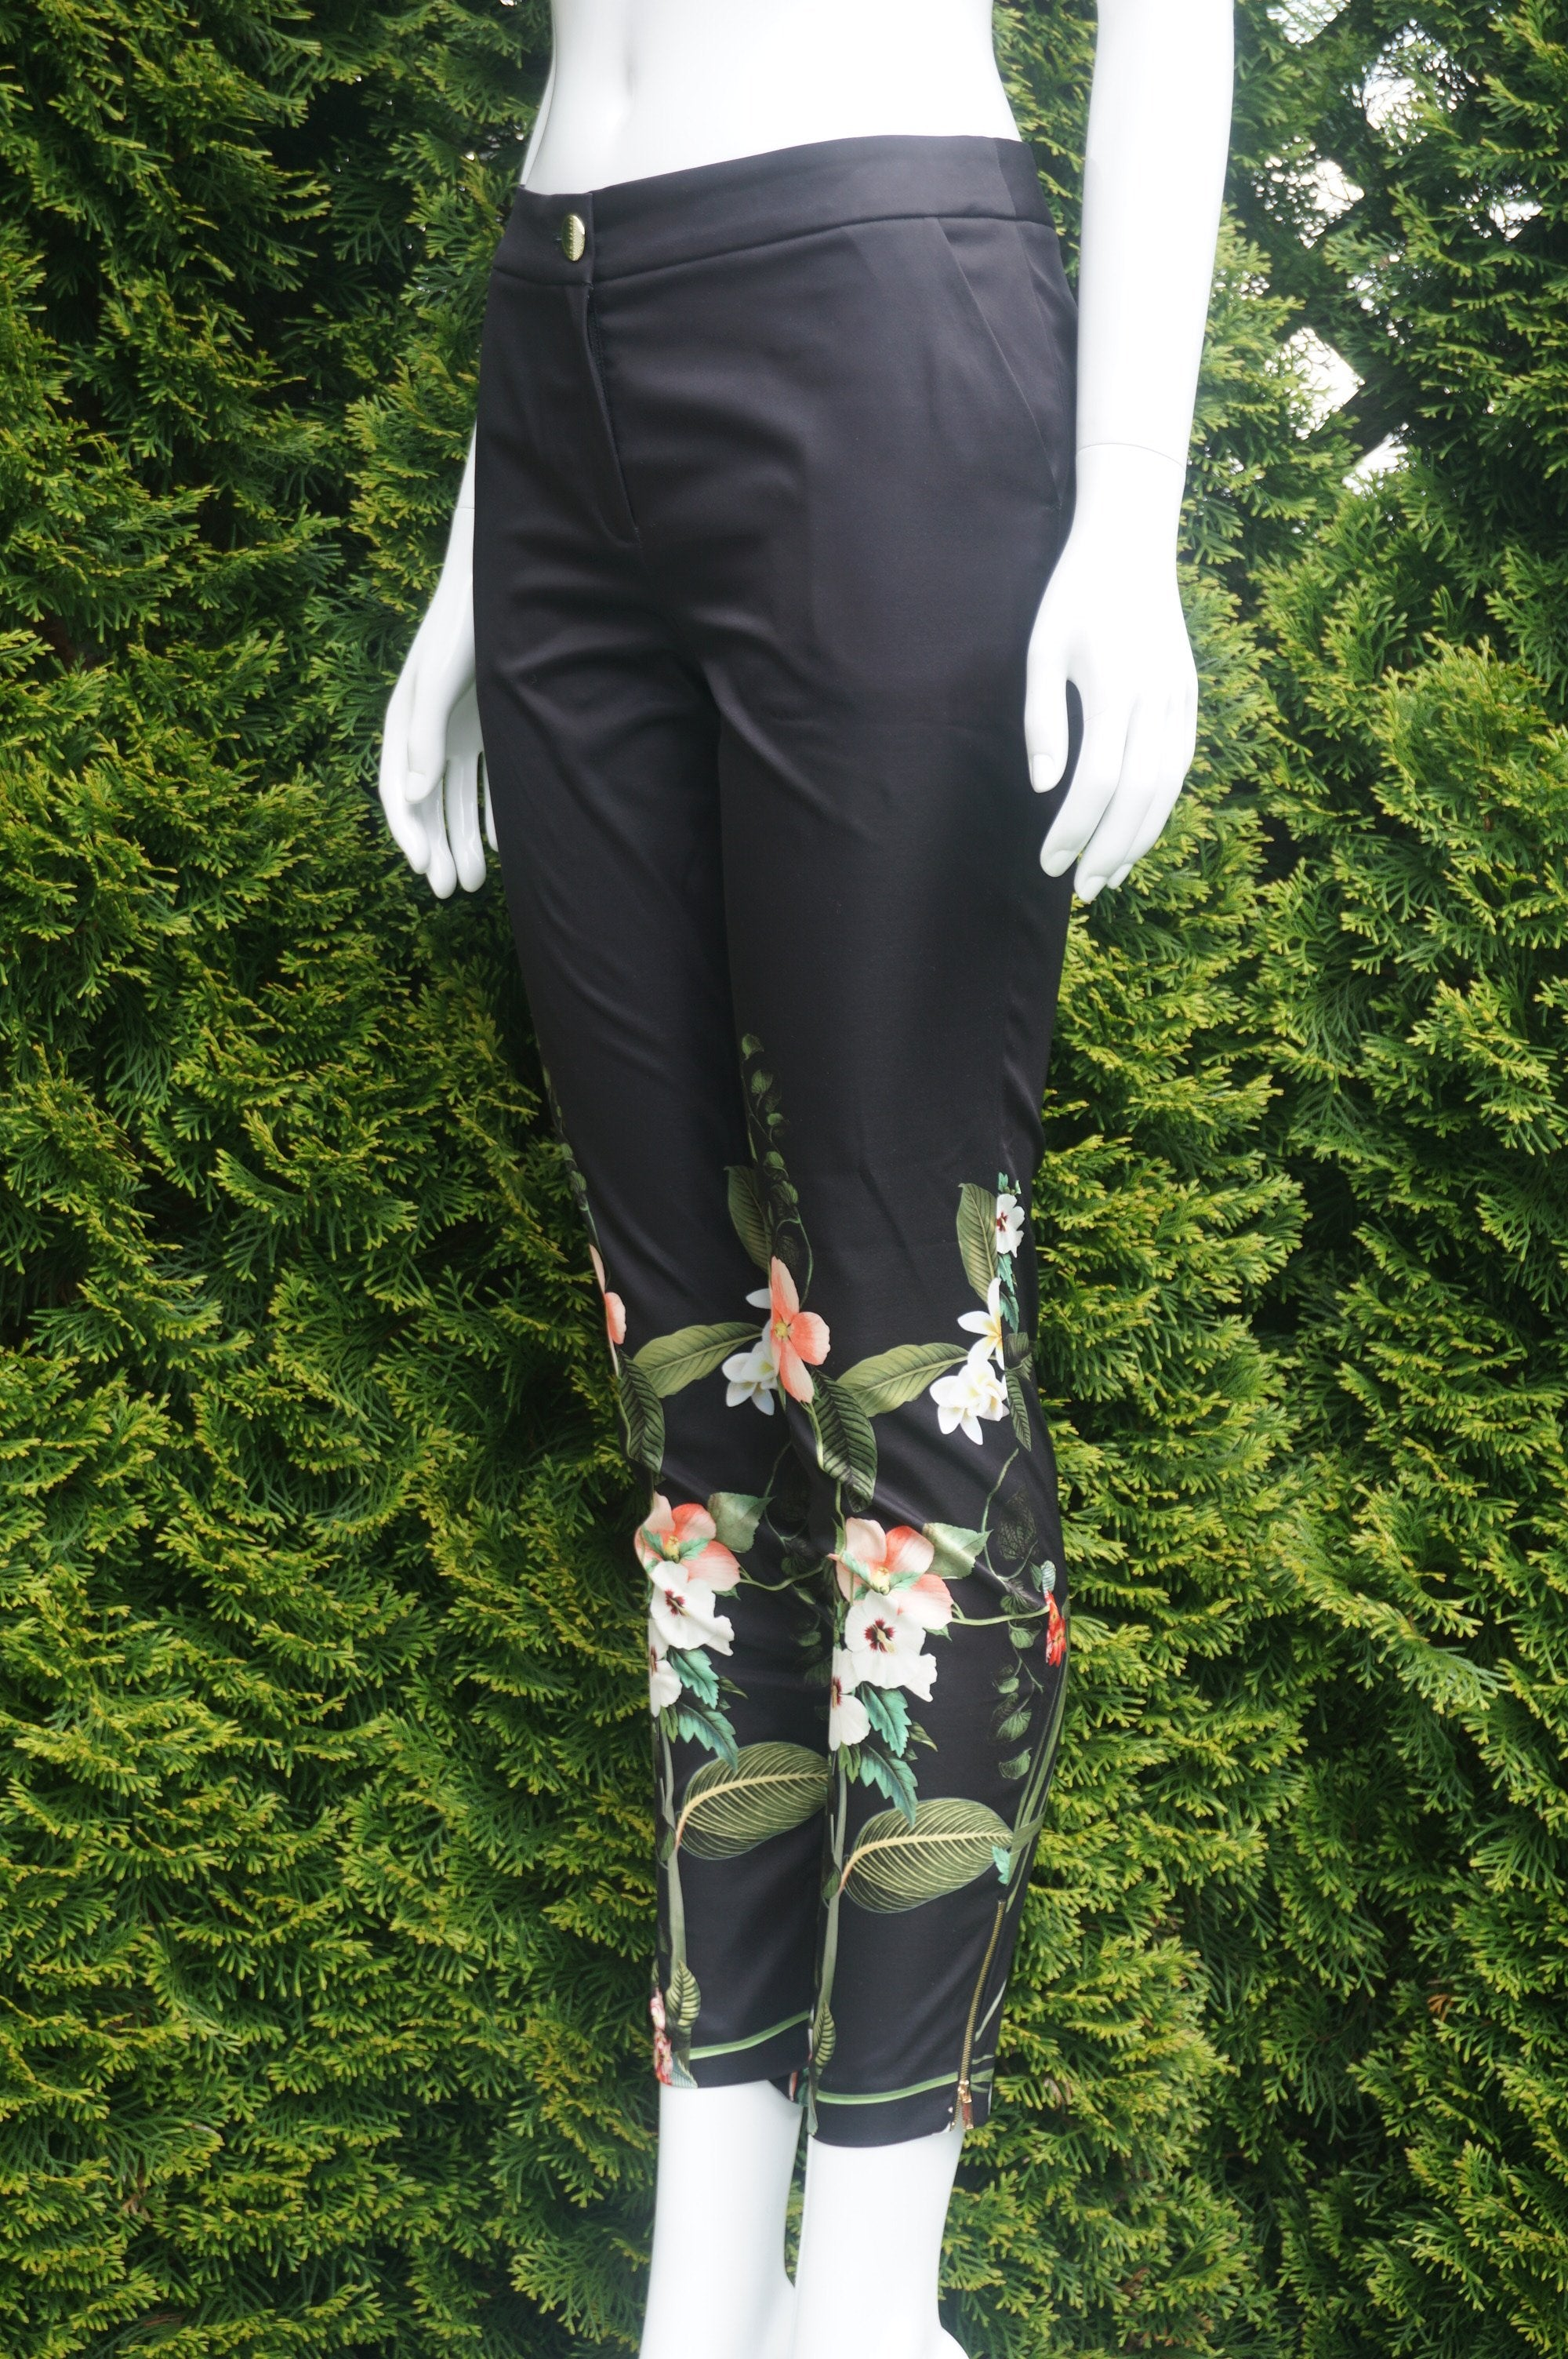 "Ted Baker Floral Bottom Pants, Ted says: ""created especially for you."", Black, Green, Shell: 100% Polyester, Lining: 97% Polyester, 5% Elastane, women's Pants, women's Black, Green Pants, Ted Baker women's Pants, women's designer floral ankle pants, floral design cropped pants, fancy dress ankle pants"